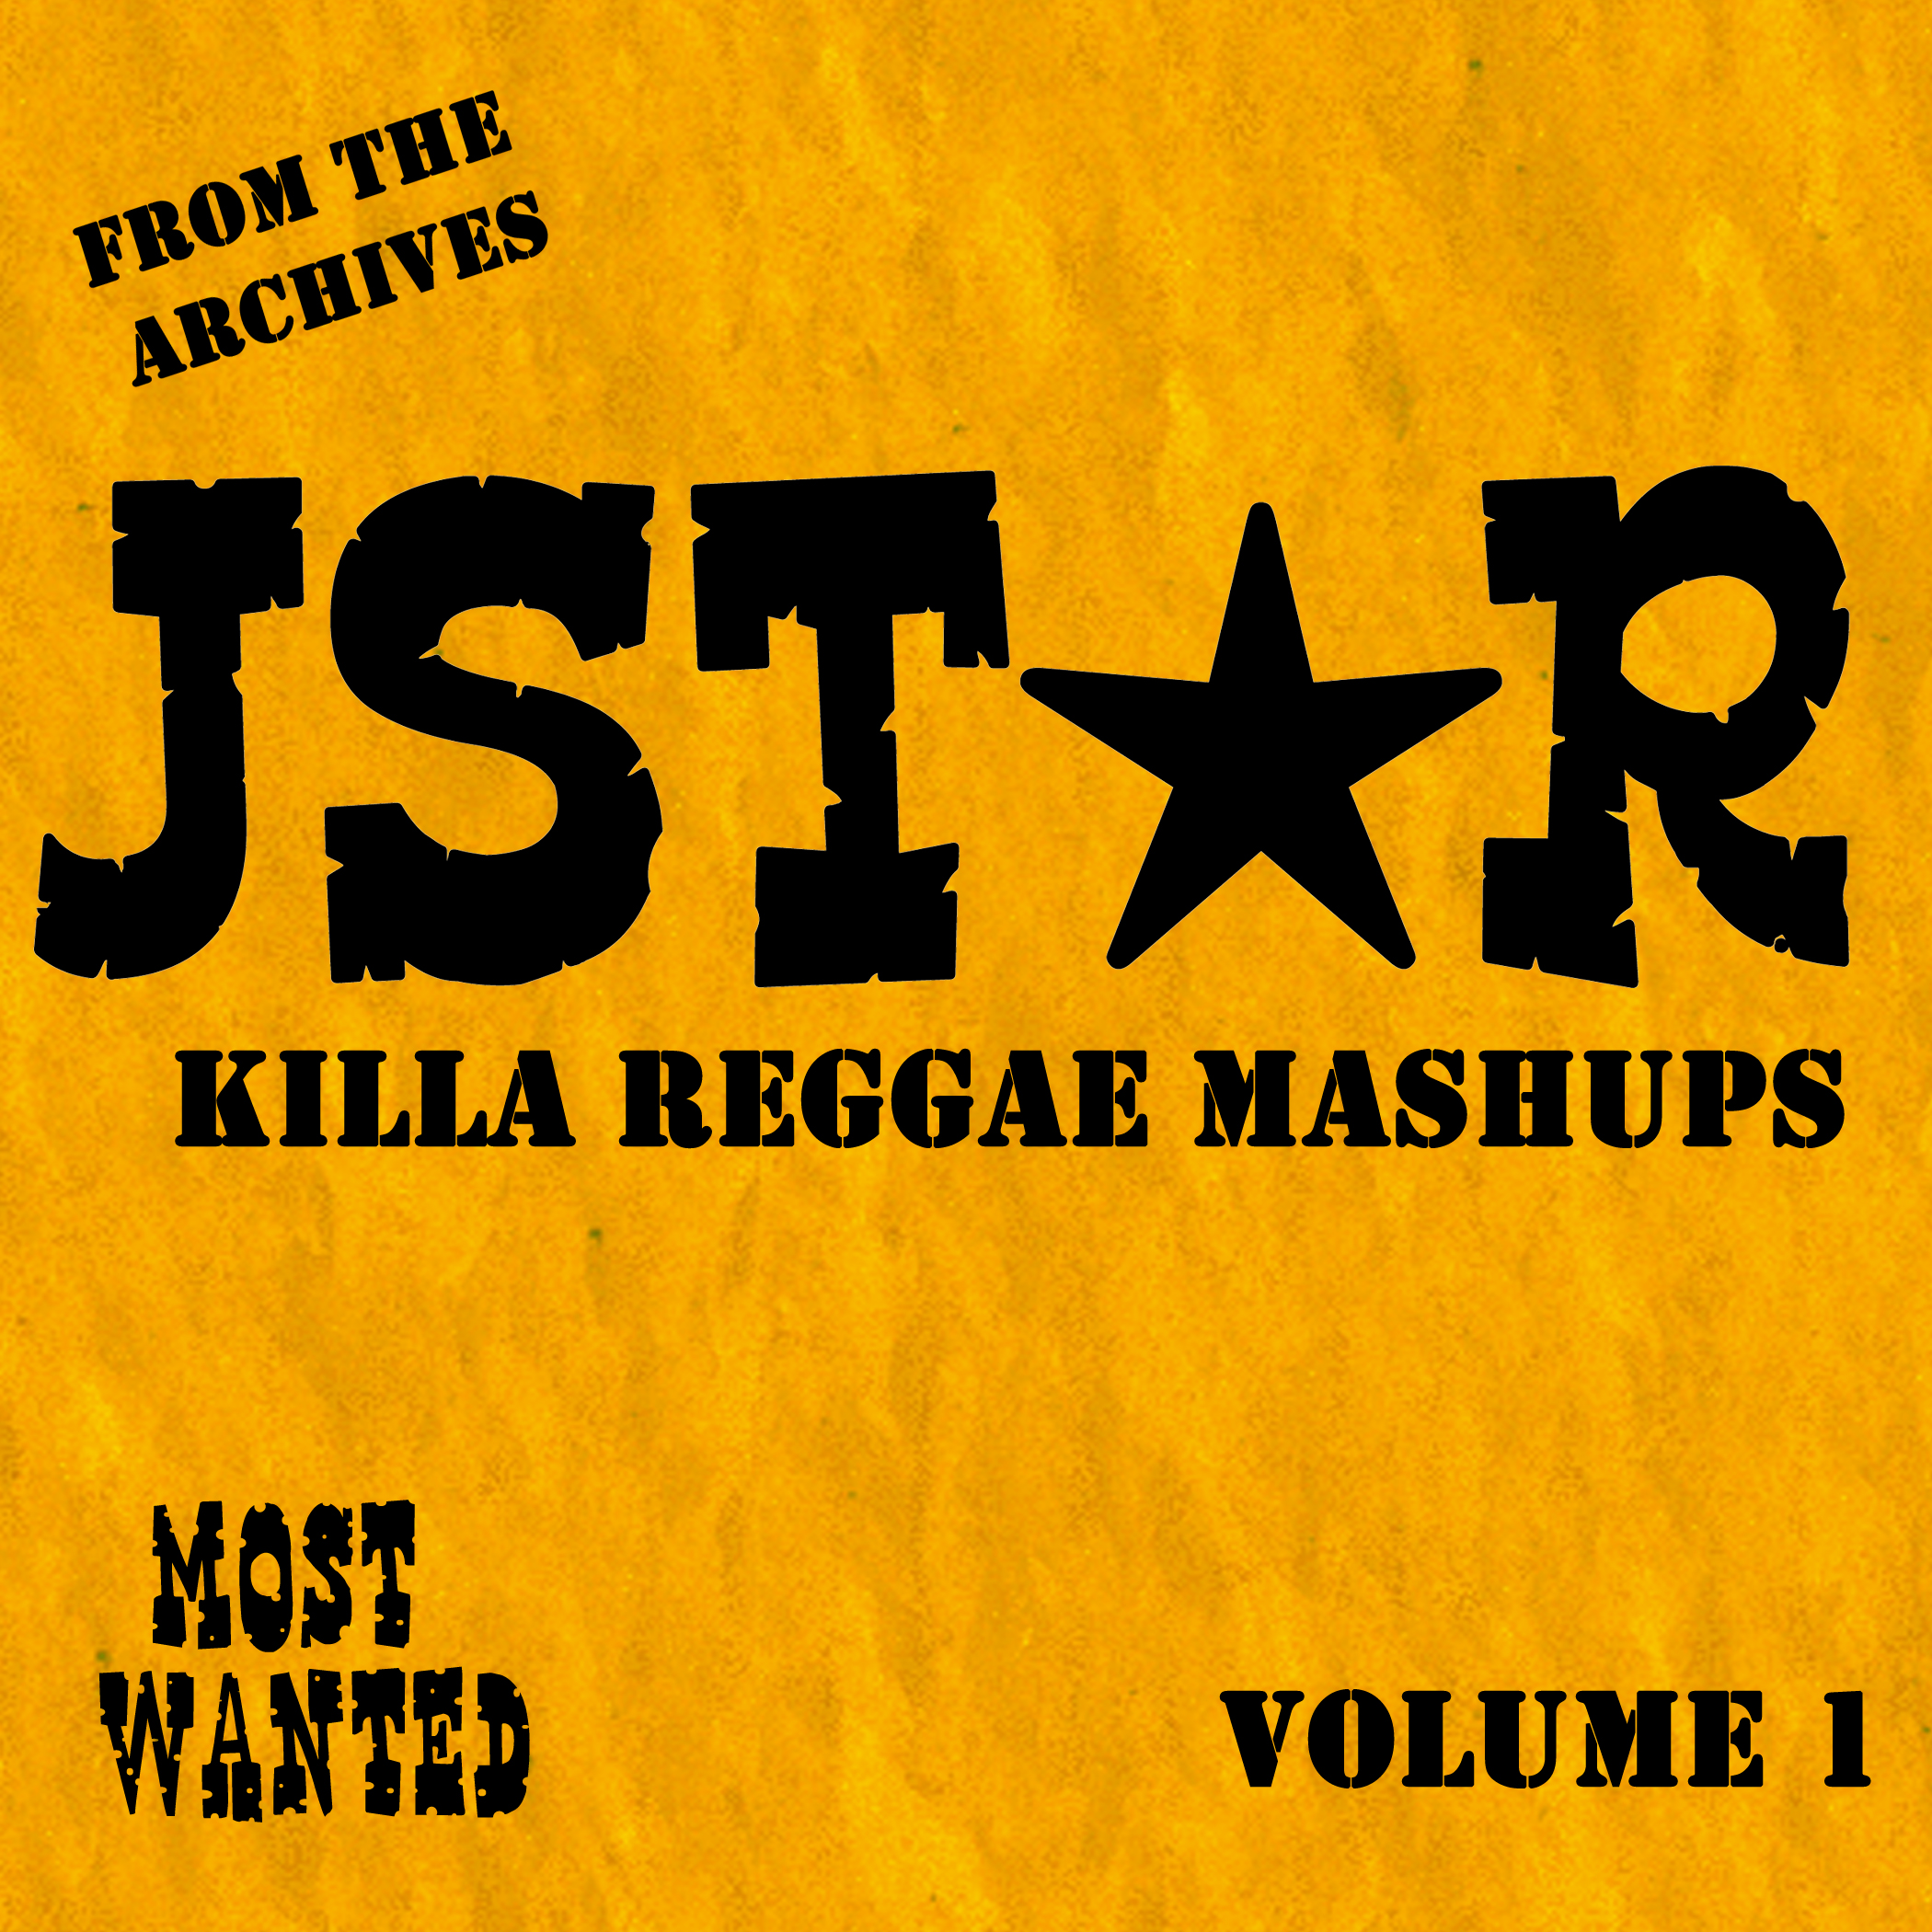 Jstar Most Wanted Archives; Volume 1 of 4